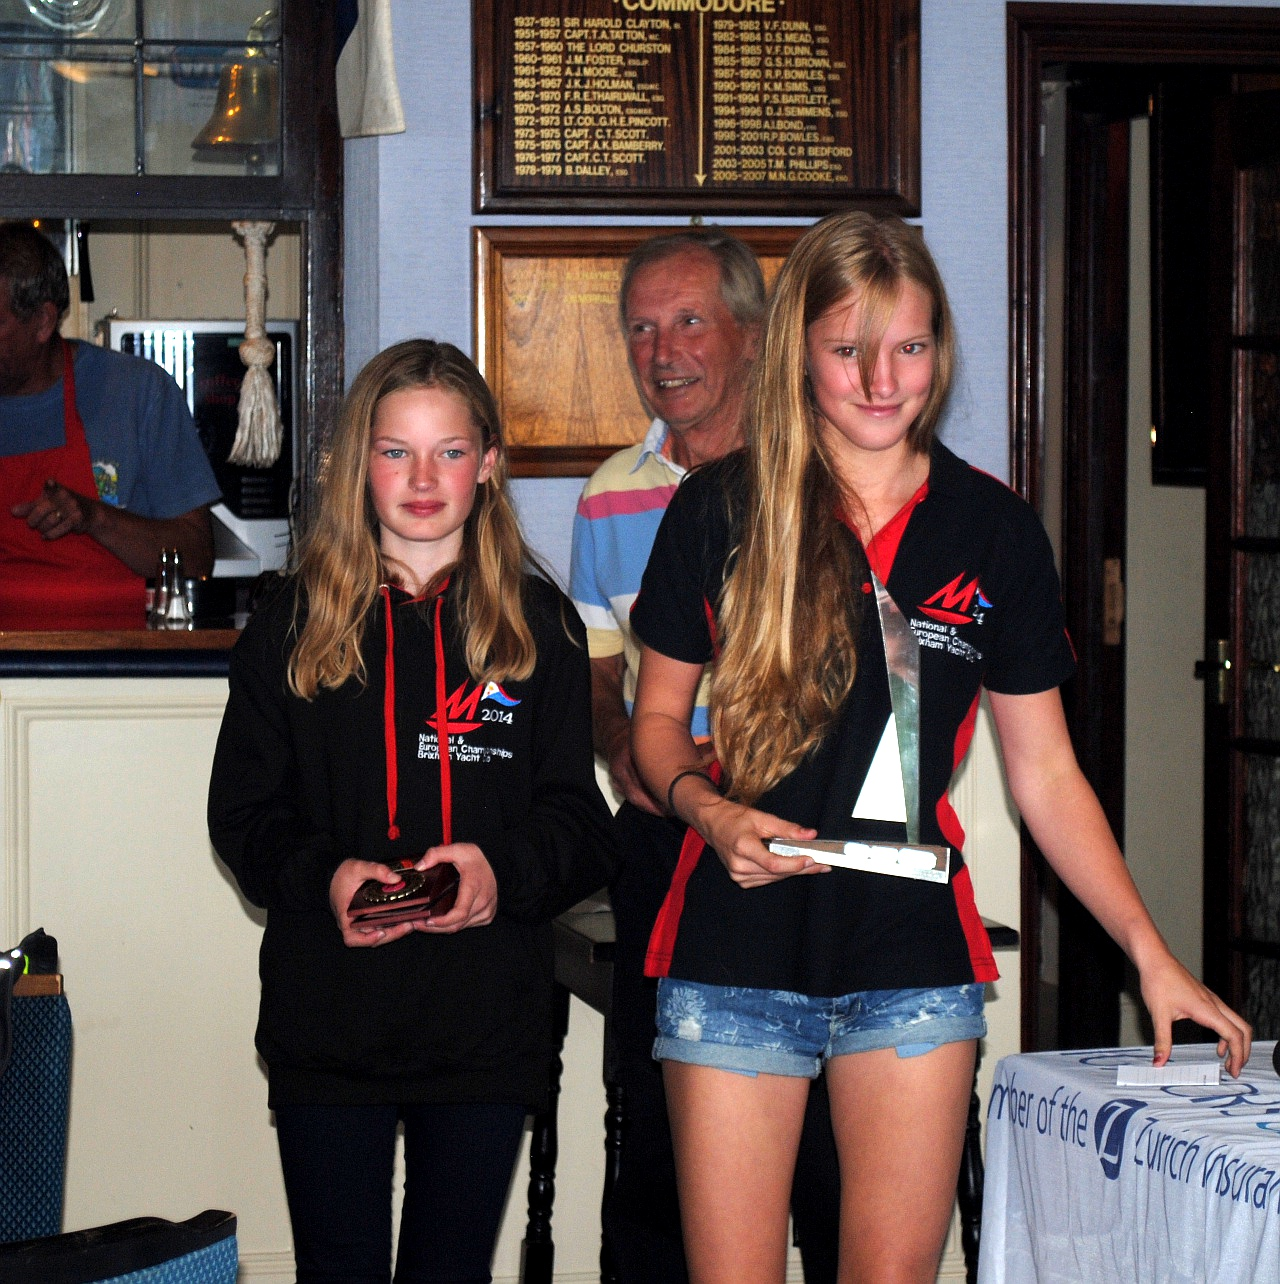 Two girls with the National Champions Trophy